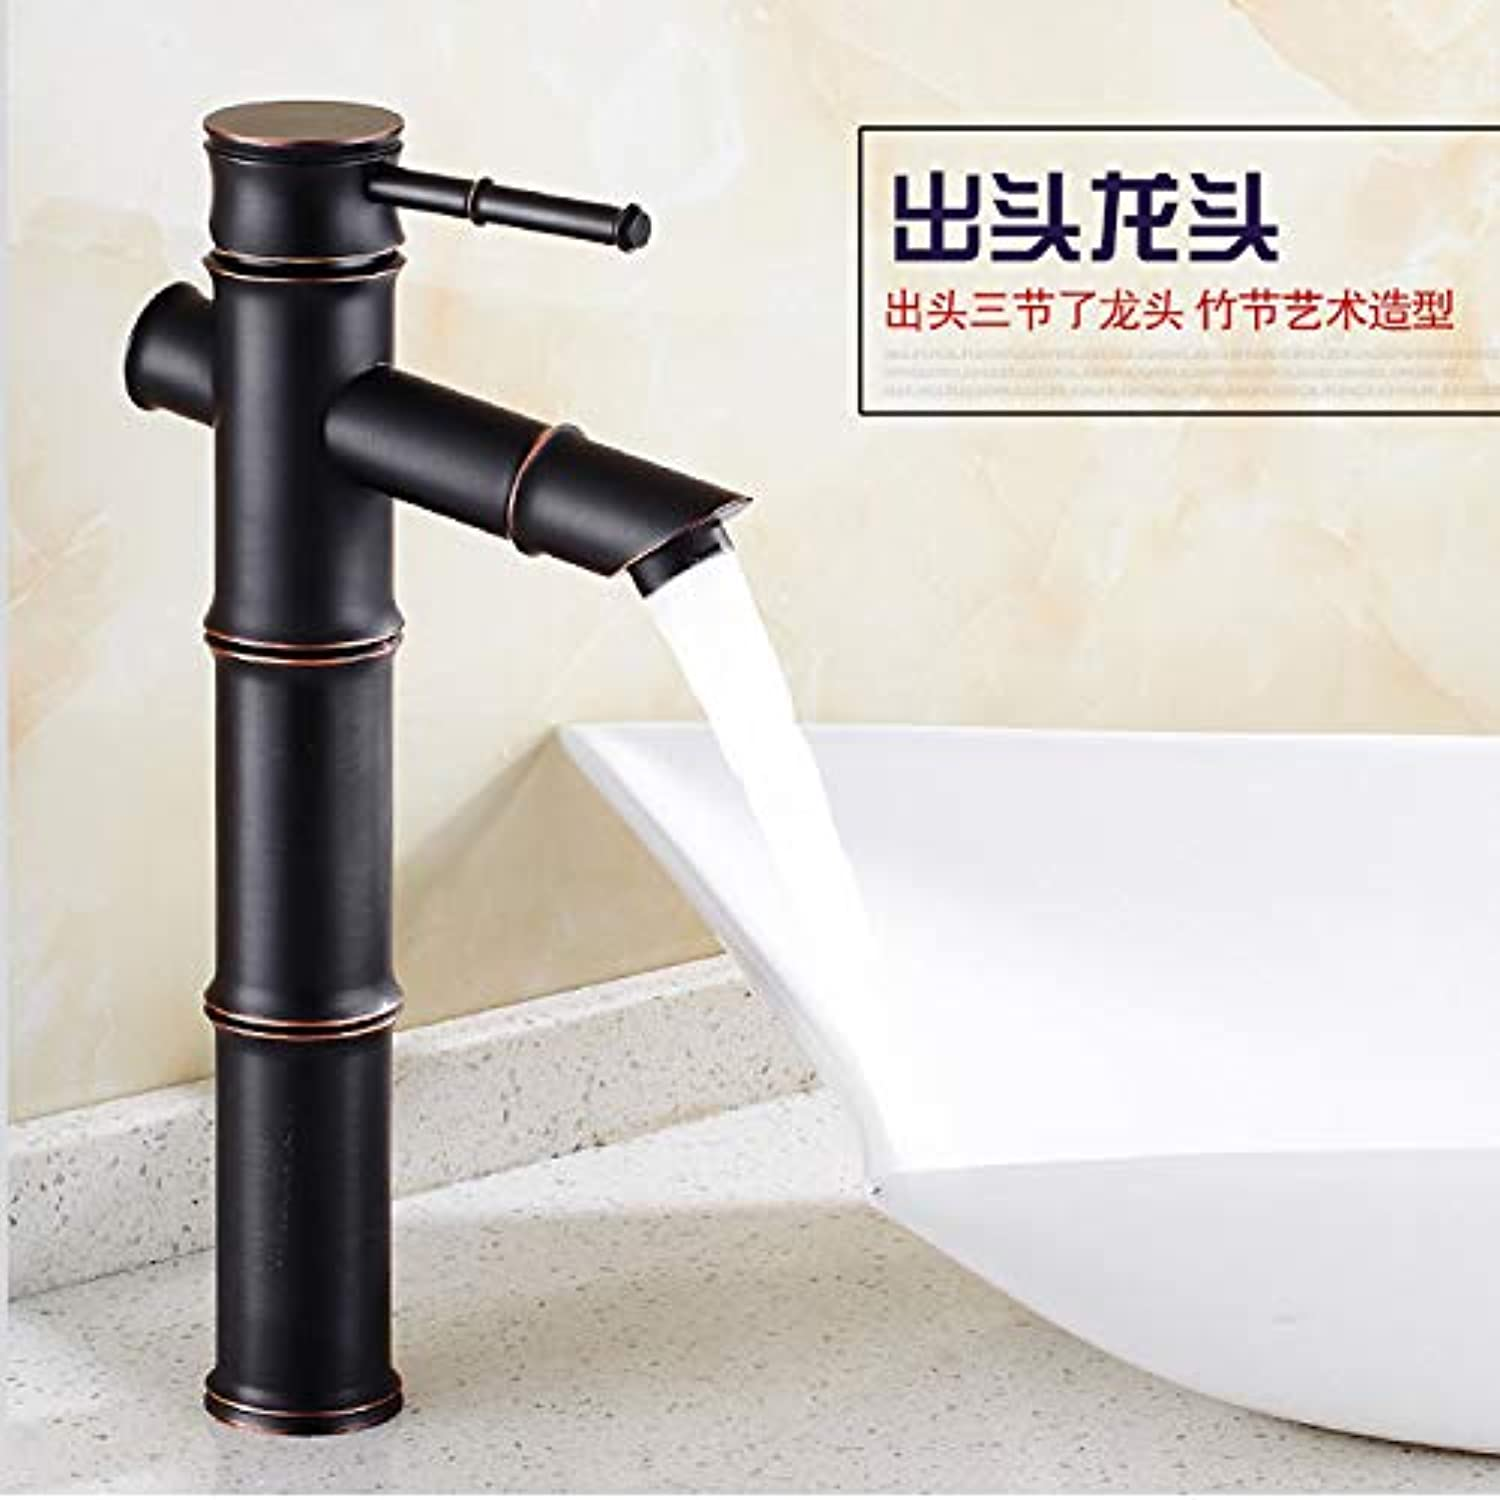 Bathroom Sink Basin Lever Mixer Tap Face Basin Faucet Copper Cold Hot Water Bamboo Knot Face Basin Faucet Black Ancient Face Basin Faucet